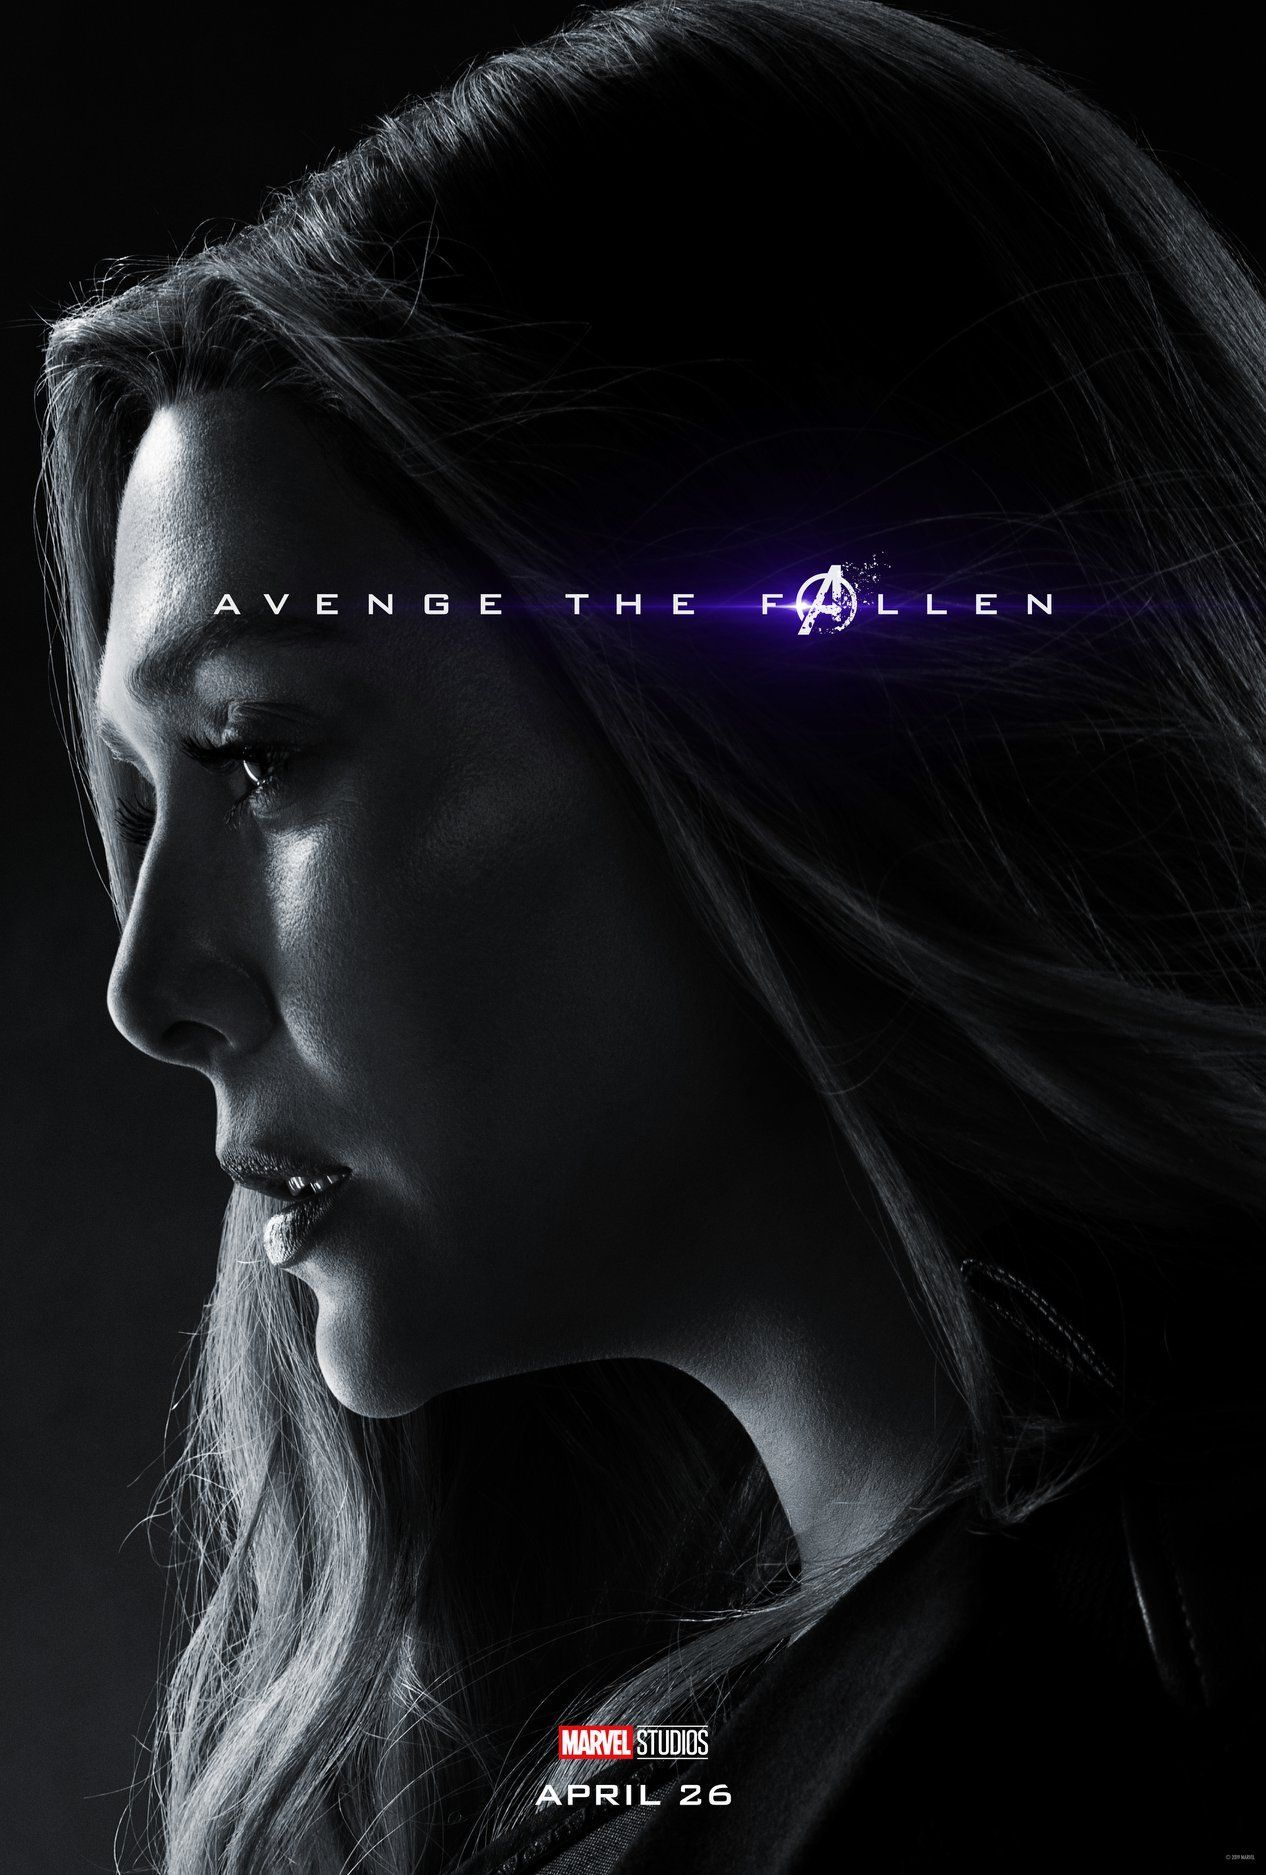 Avengers End Game Photo Paper Poster Movie Re Release We Love You 3000 42*30cm